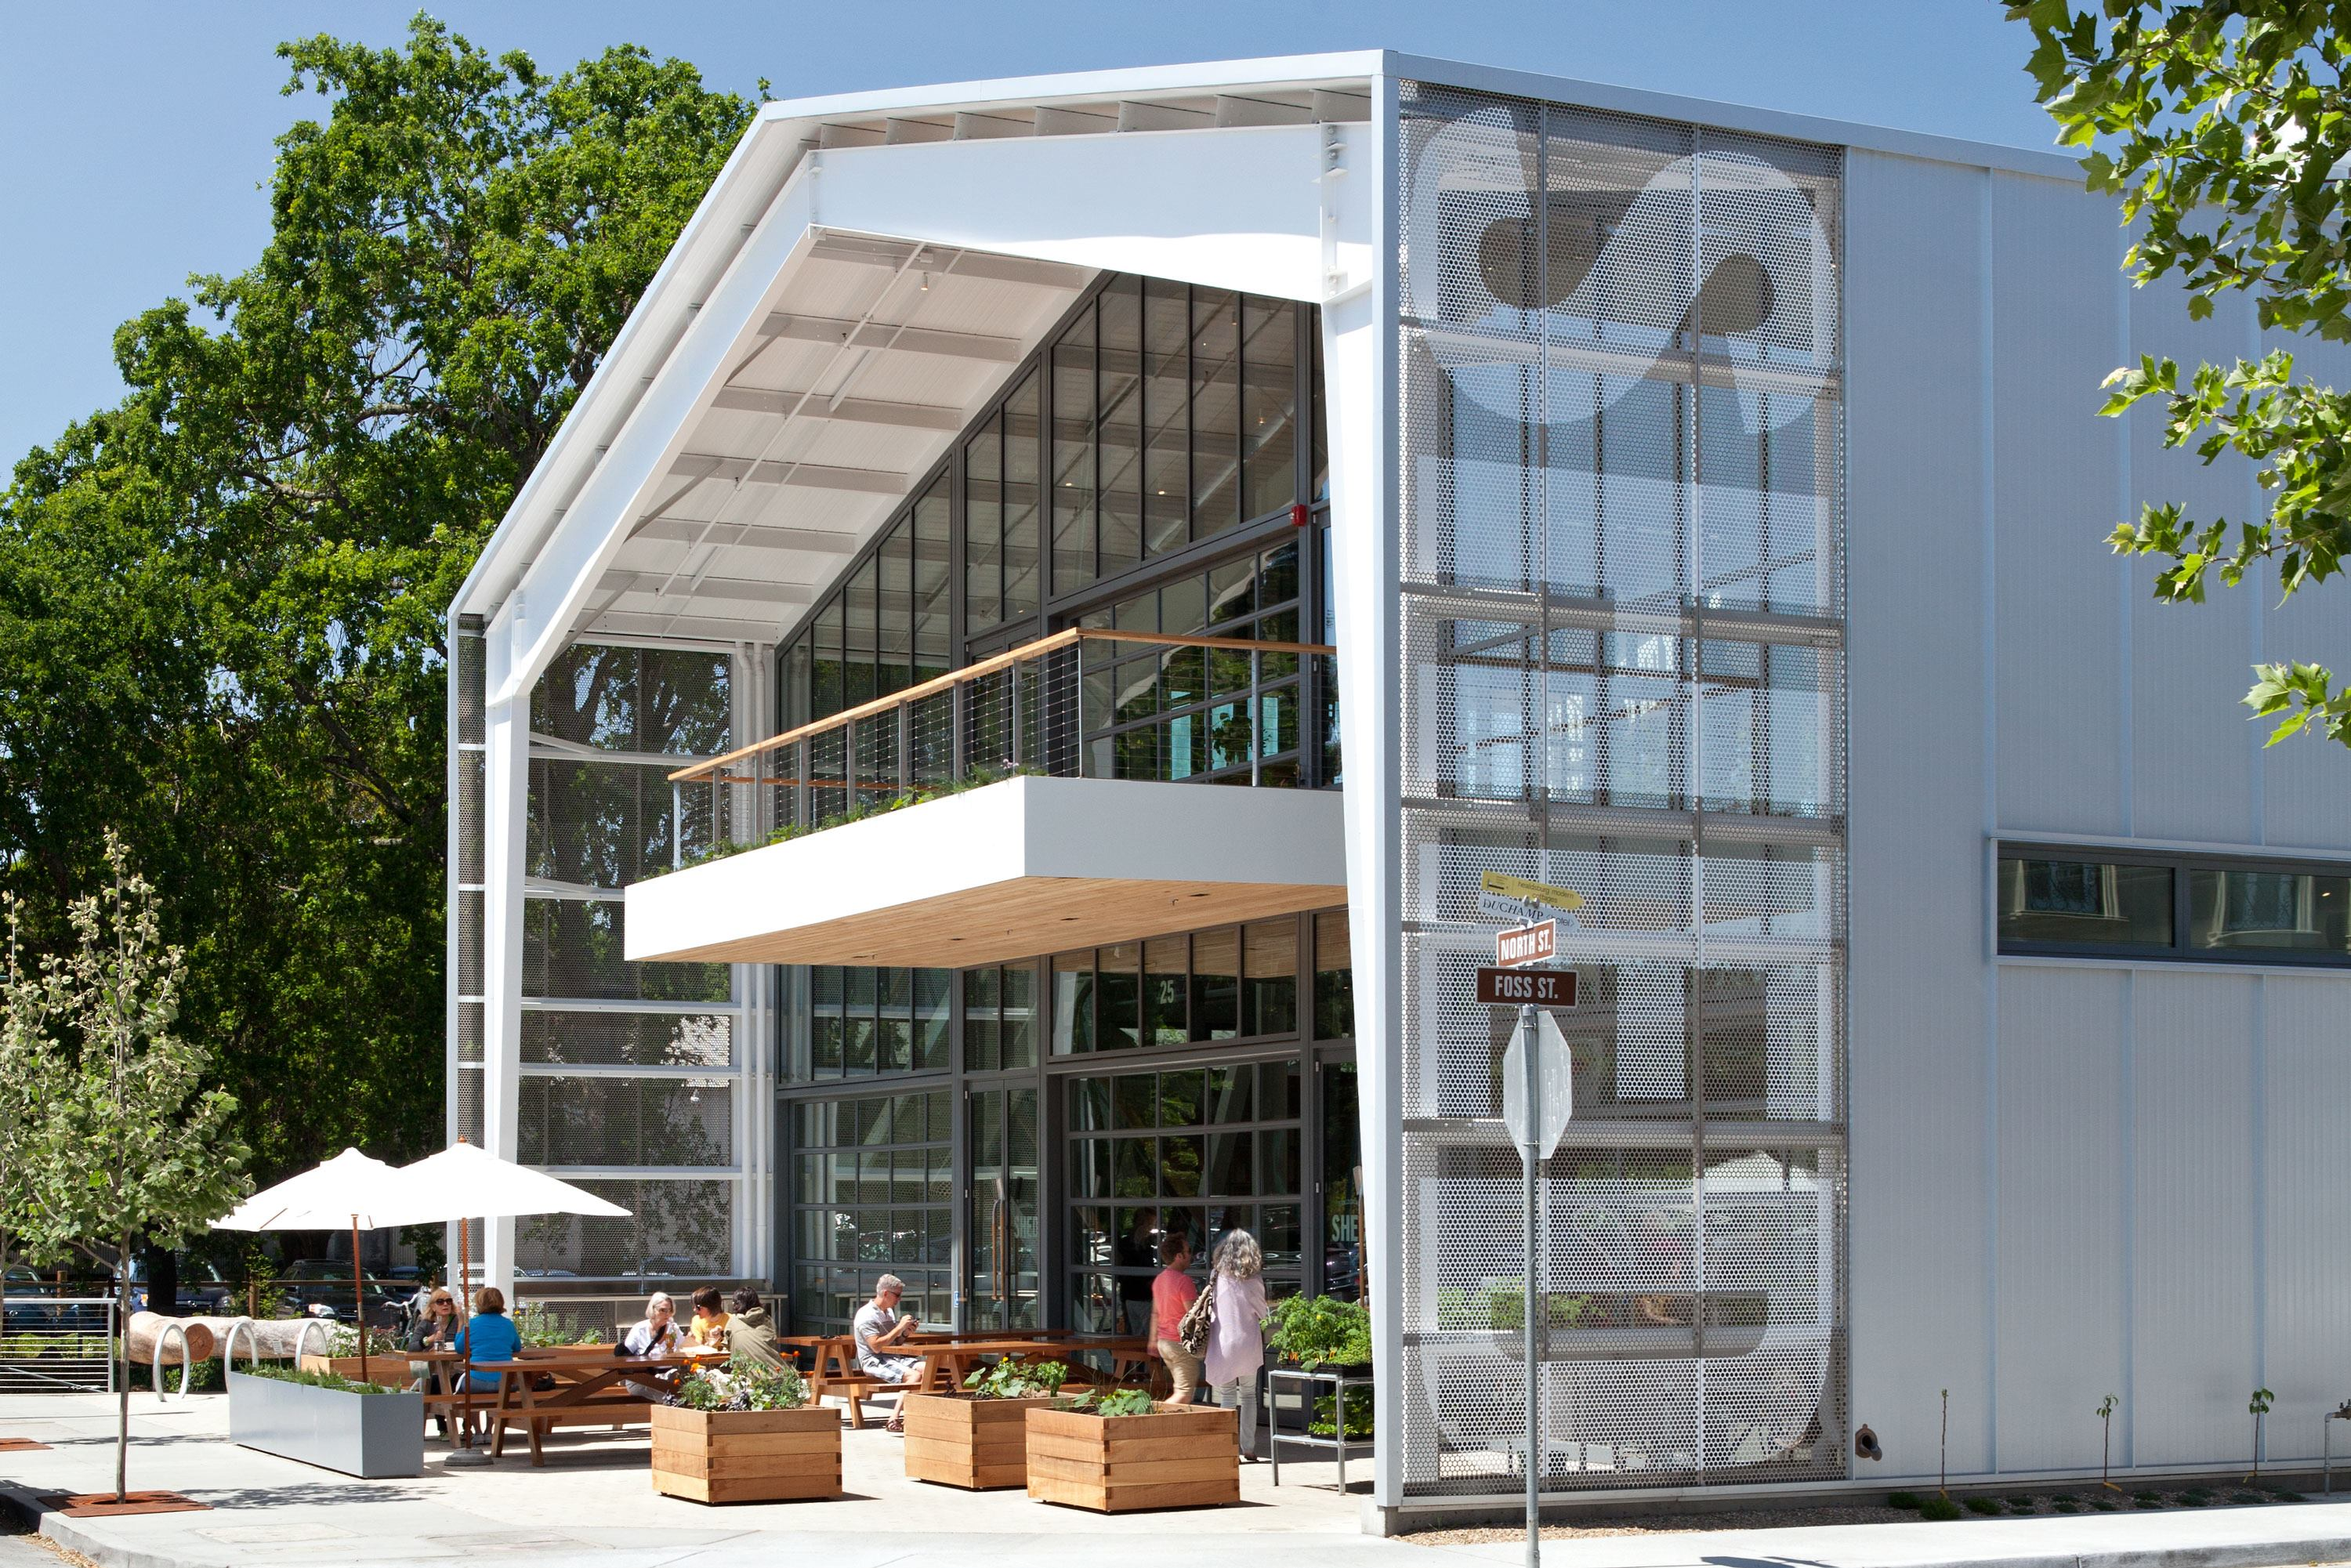 Shed store and caf architect magazine retail projects for Store building design